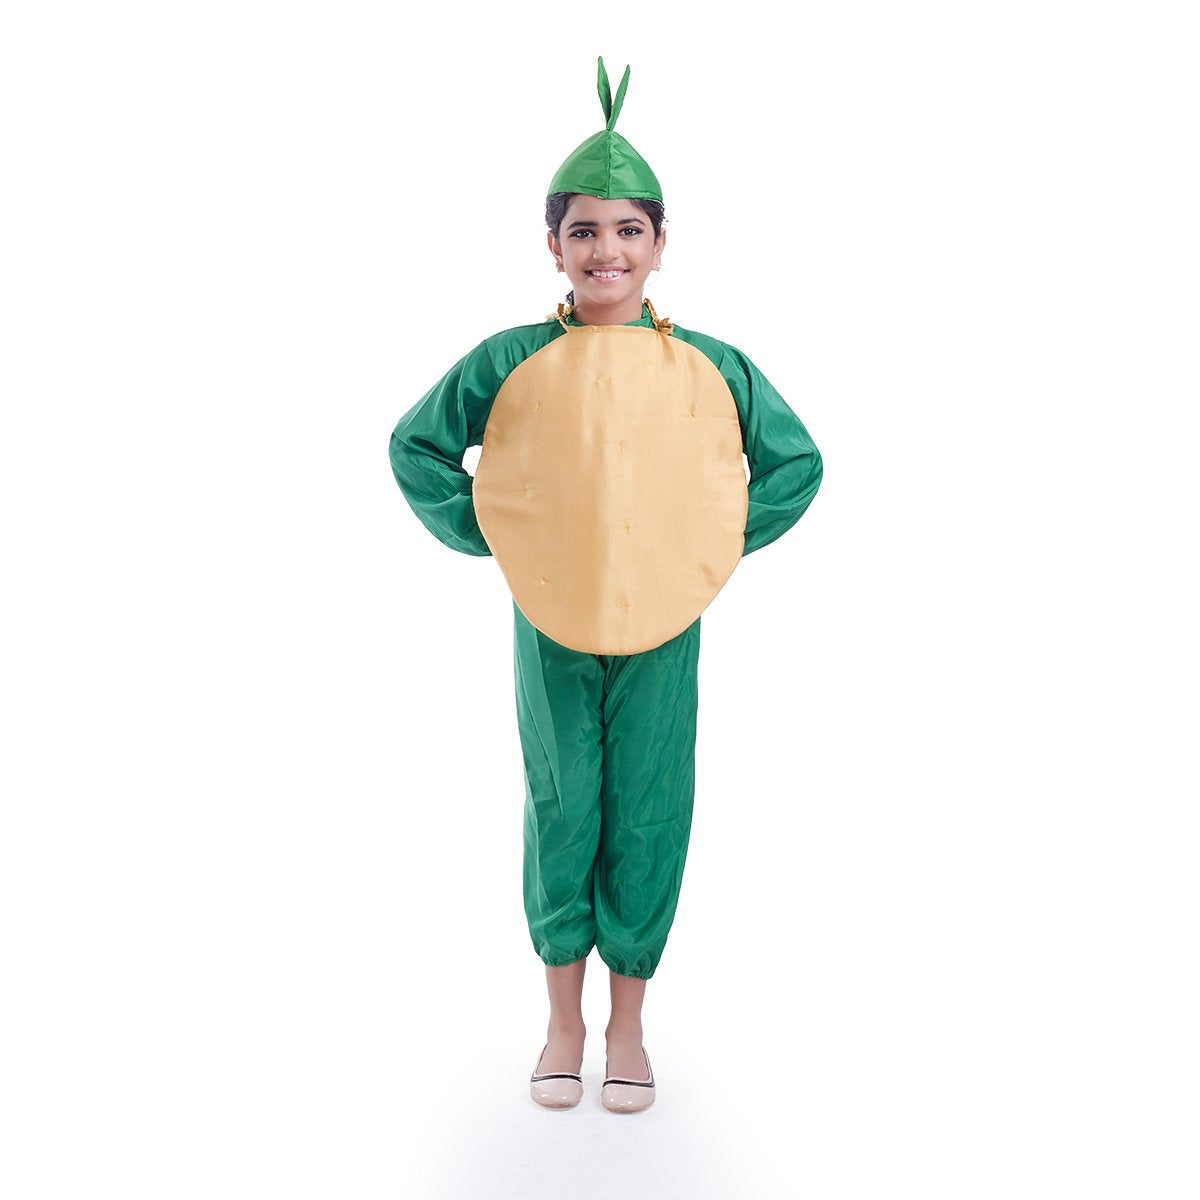 Potato Vegetable costume